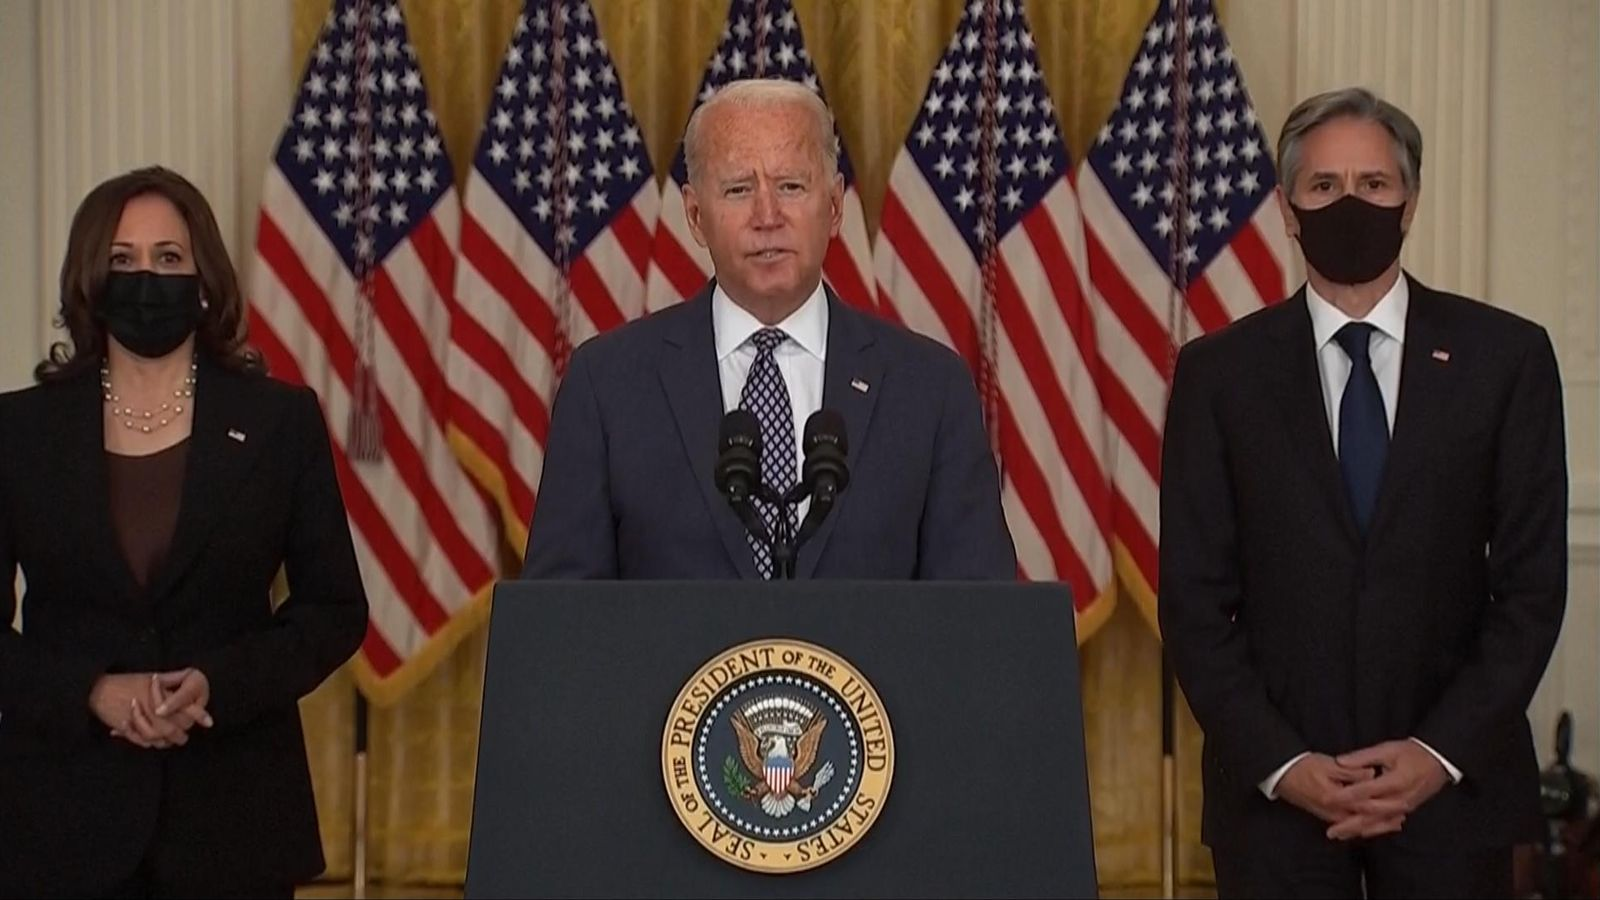 Afghanistan: Biden maintains he's done what's best for America – yet he's led his allies into a crisis for them all